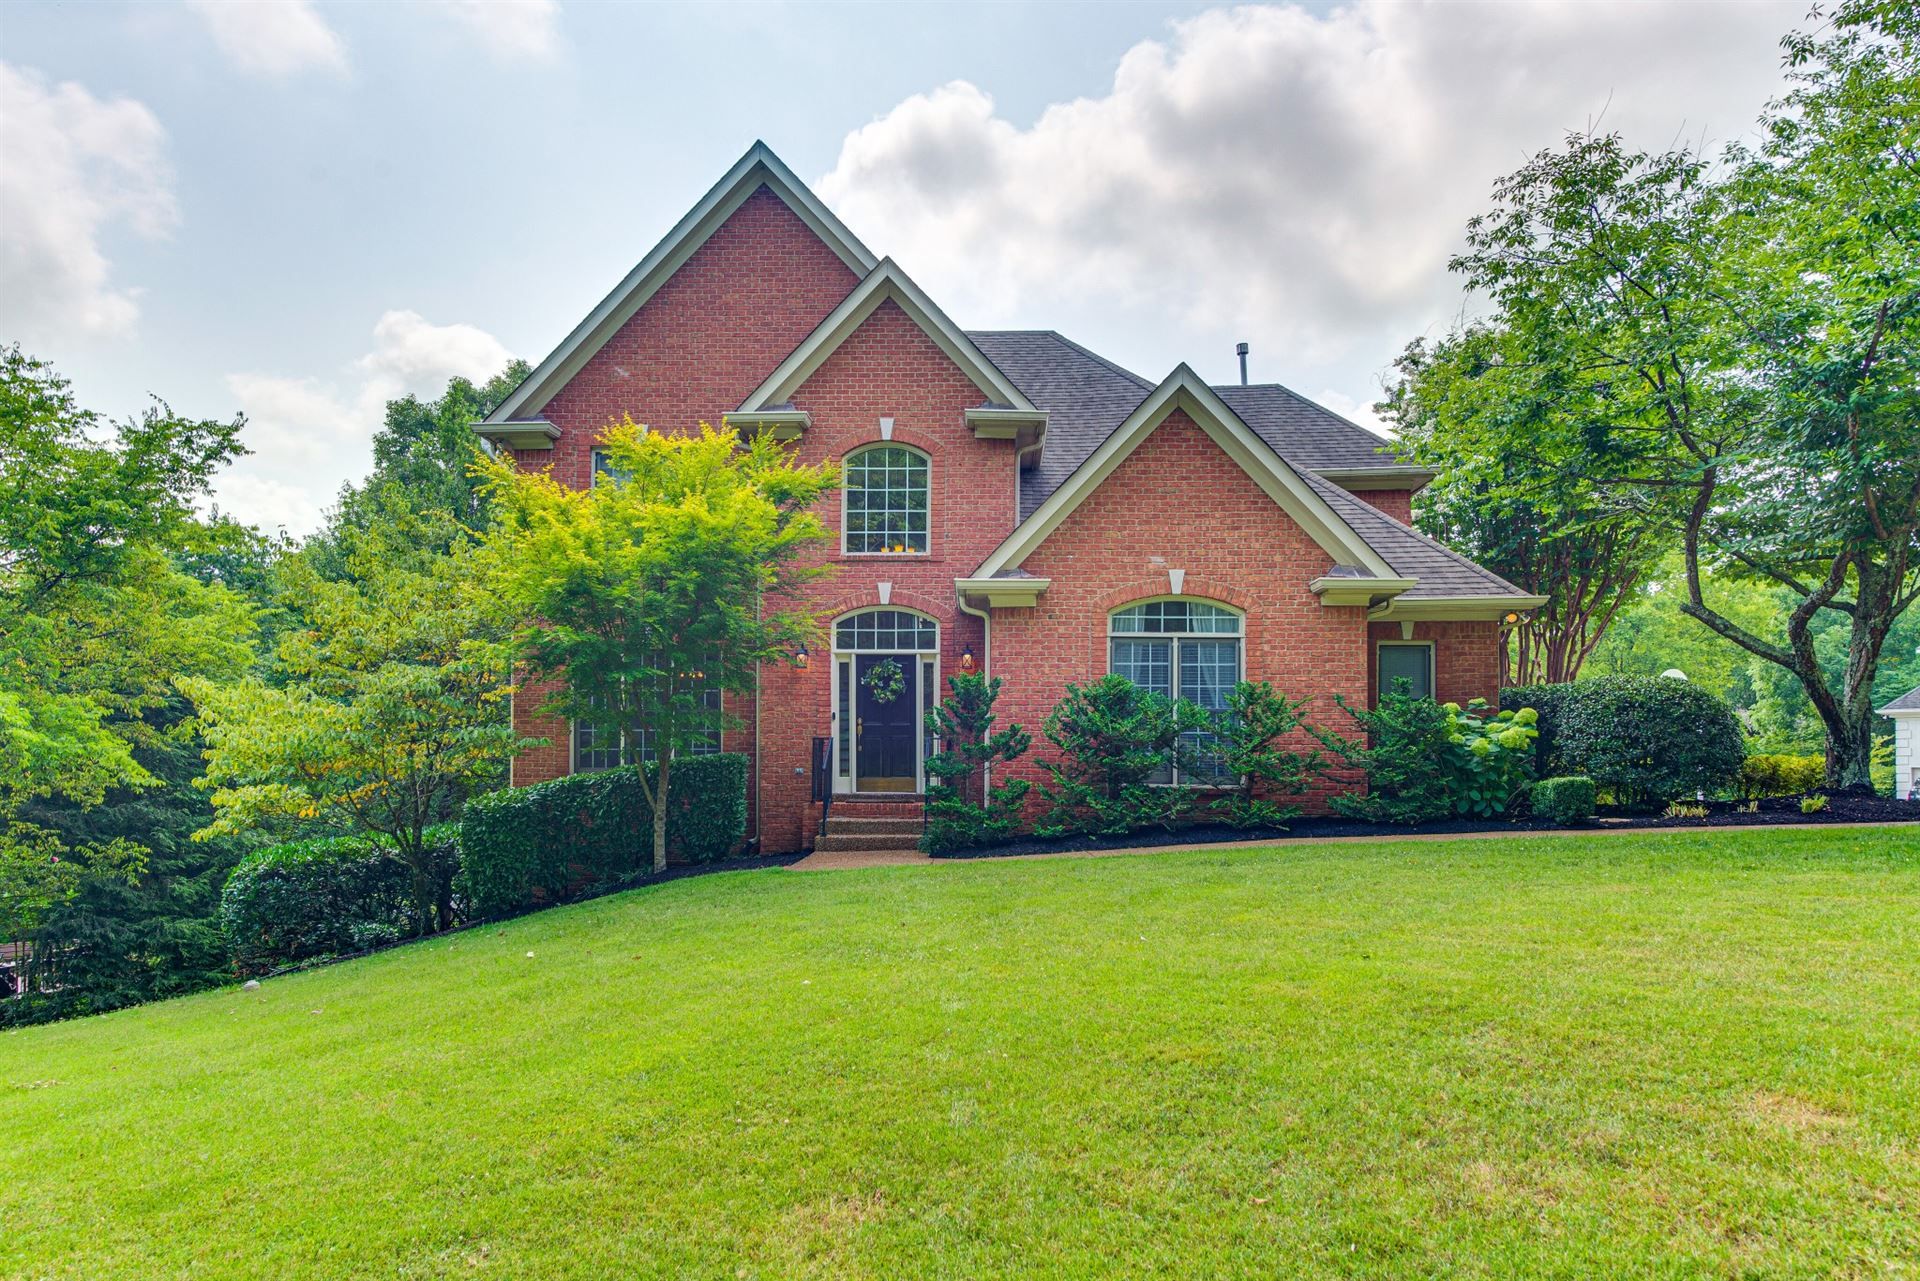 Photo of 7061 Willowick Dr, Brentwood, TN 37027 (MLS # 2276774)